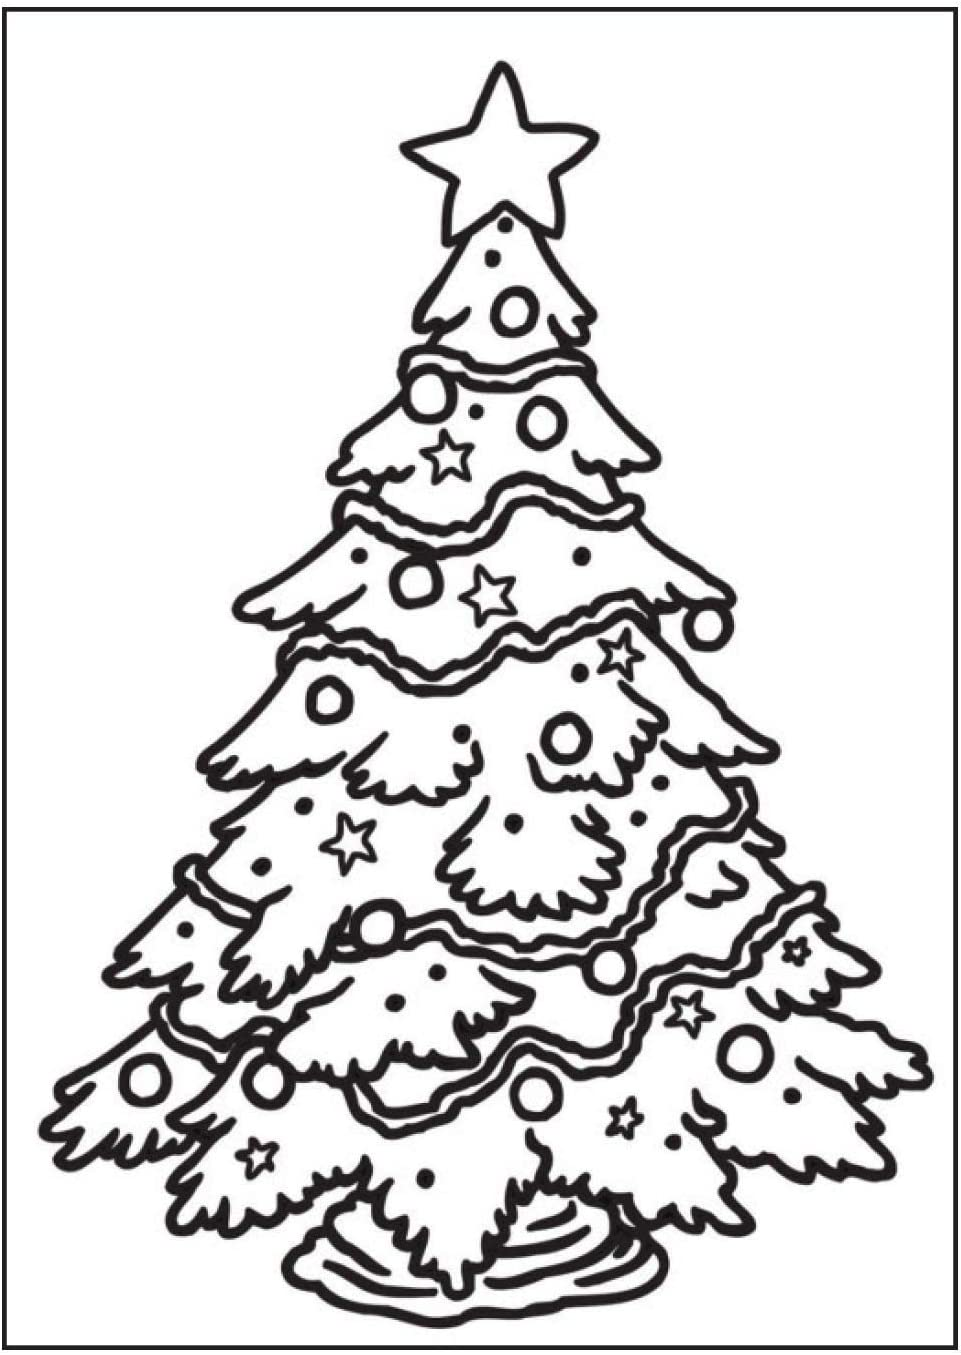 Darice 1218-45 Max 75% OFF Embossing Folder 4.25 by Jacksonville Mall Christmas 5.75-Inch Tr